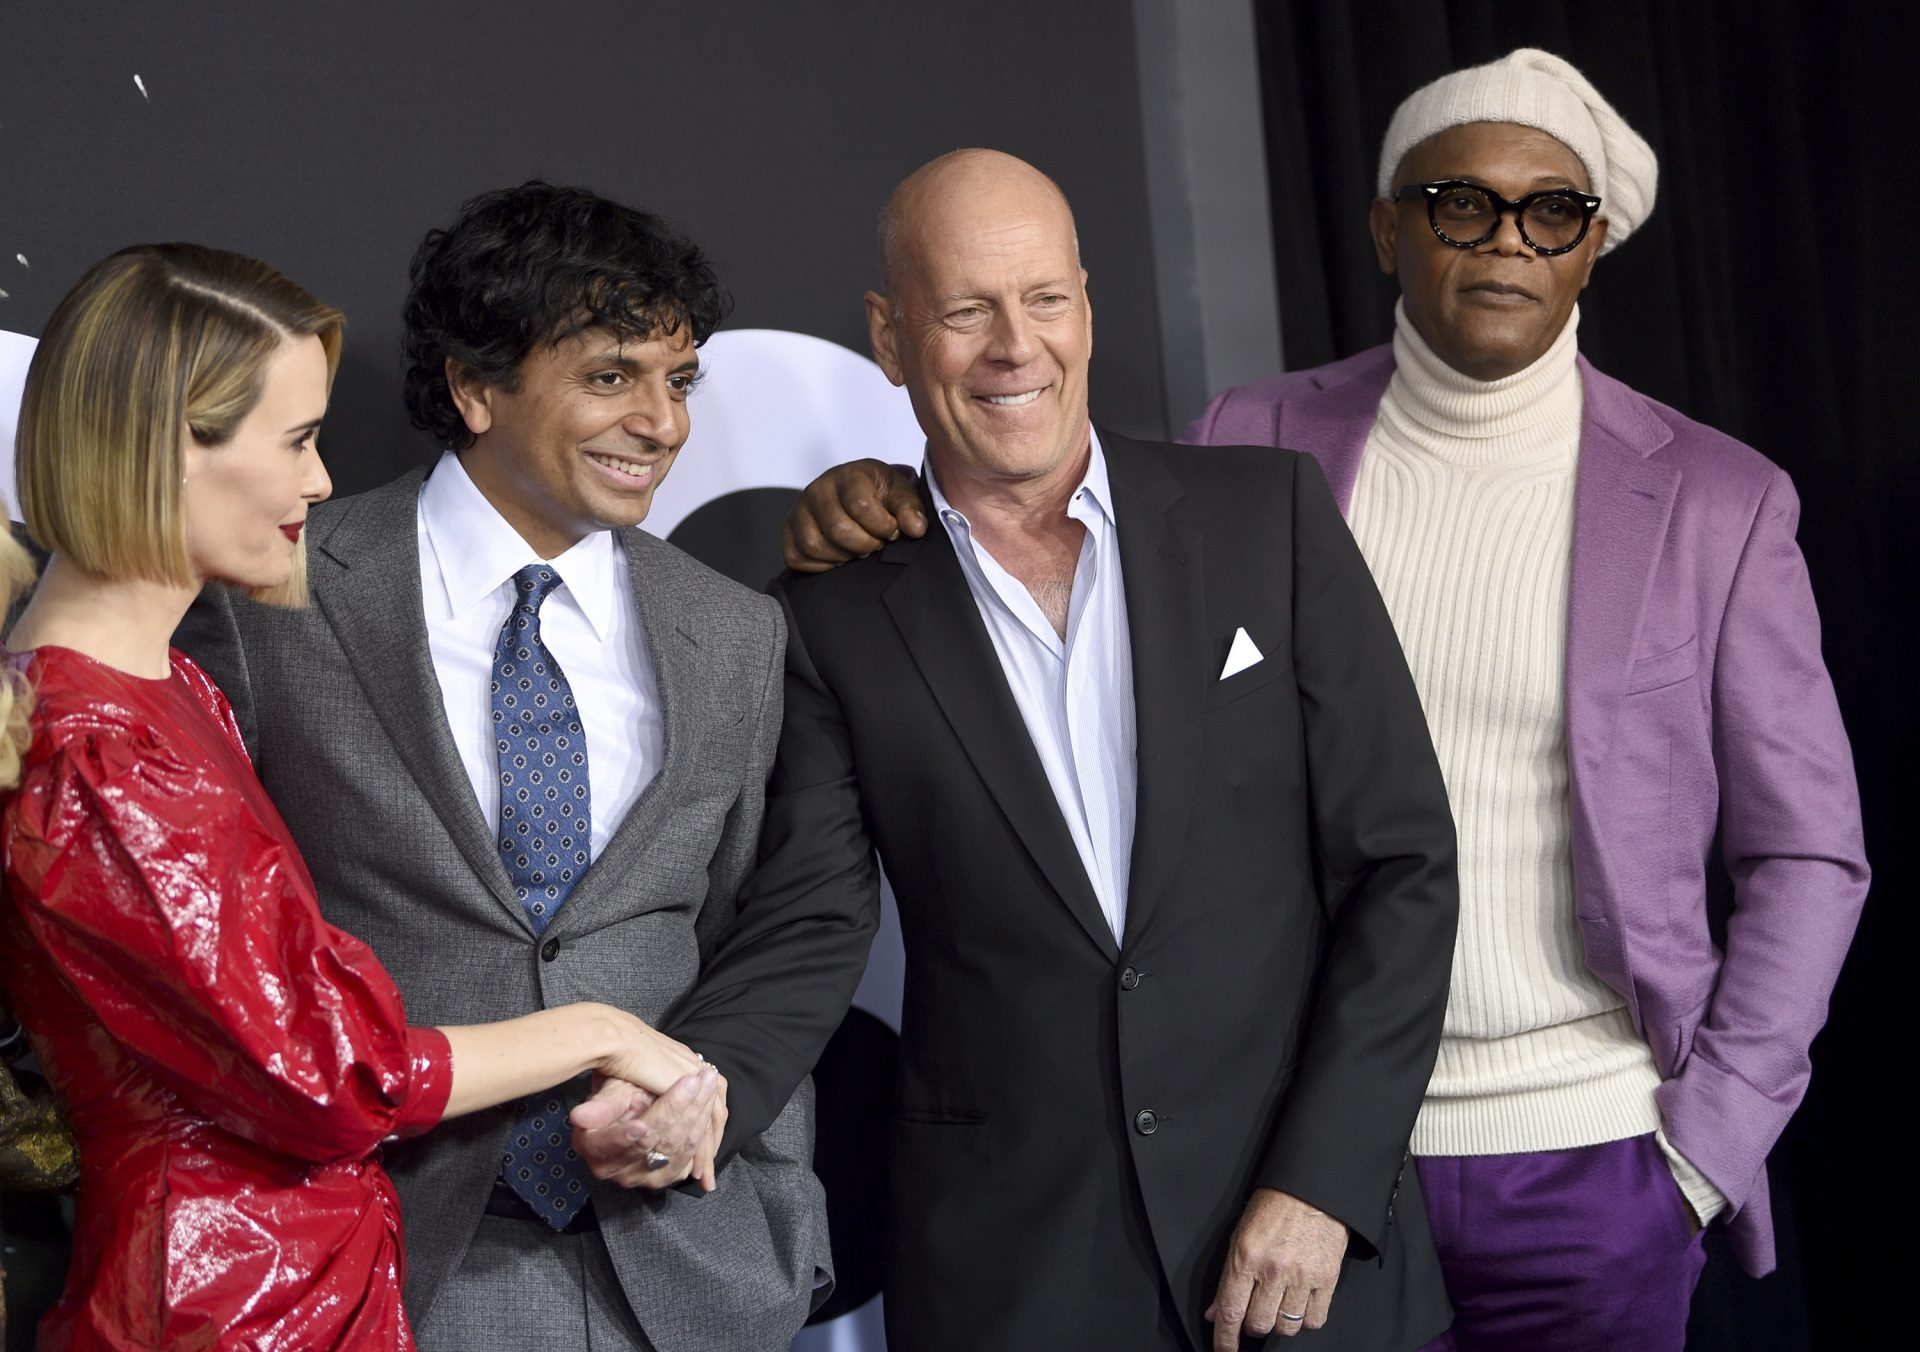 """Sarah Paulson, from left, M. Night Shyamalan, Bruce Willis and Samuel L. Jackson attend the premiere of """"Glass"""" at the SVA Theatre on Tuesday, Jan. 15, 2019, in New York."""